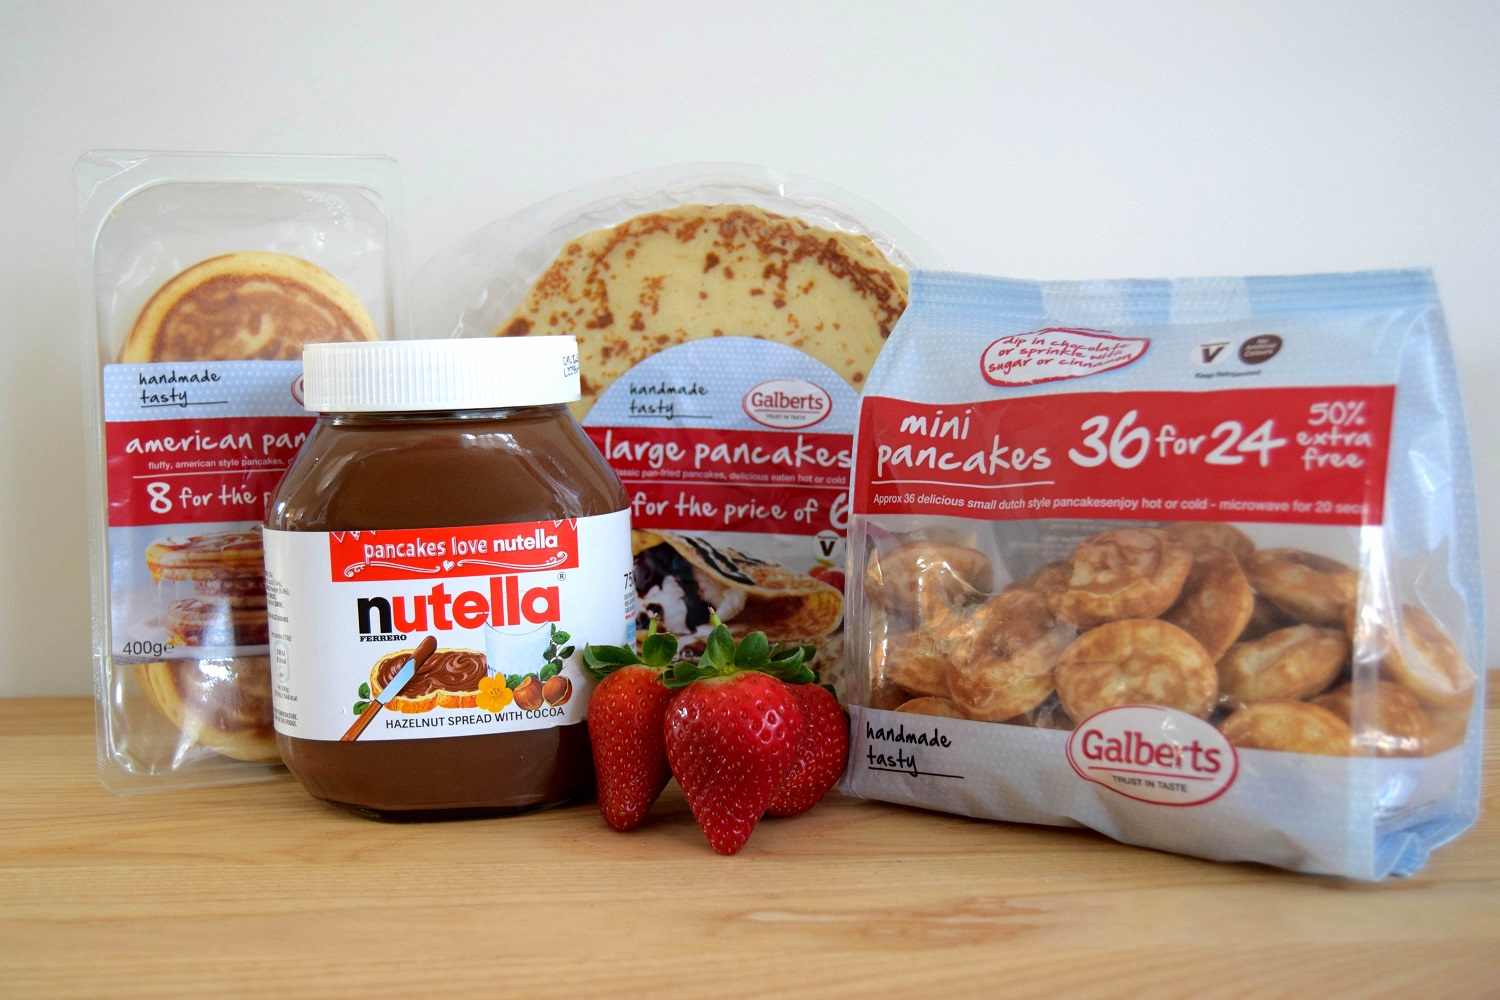 Galberts to partner with Nutella on Pancake Day Campaign